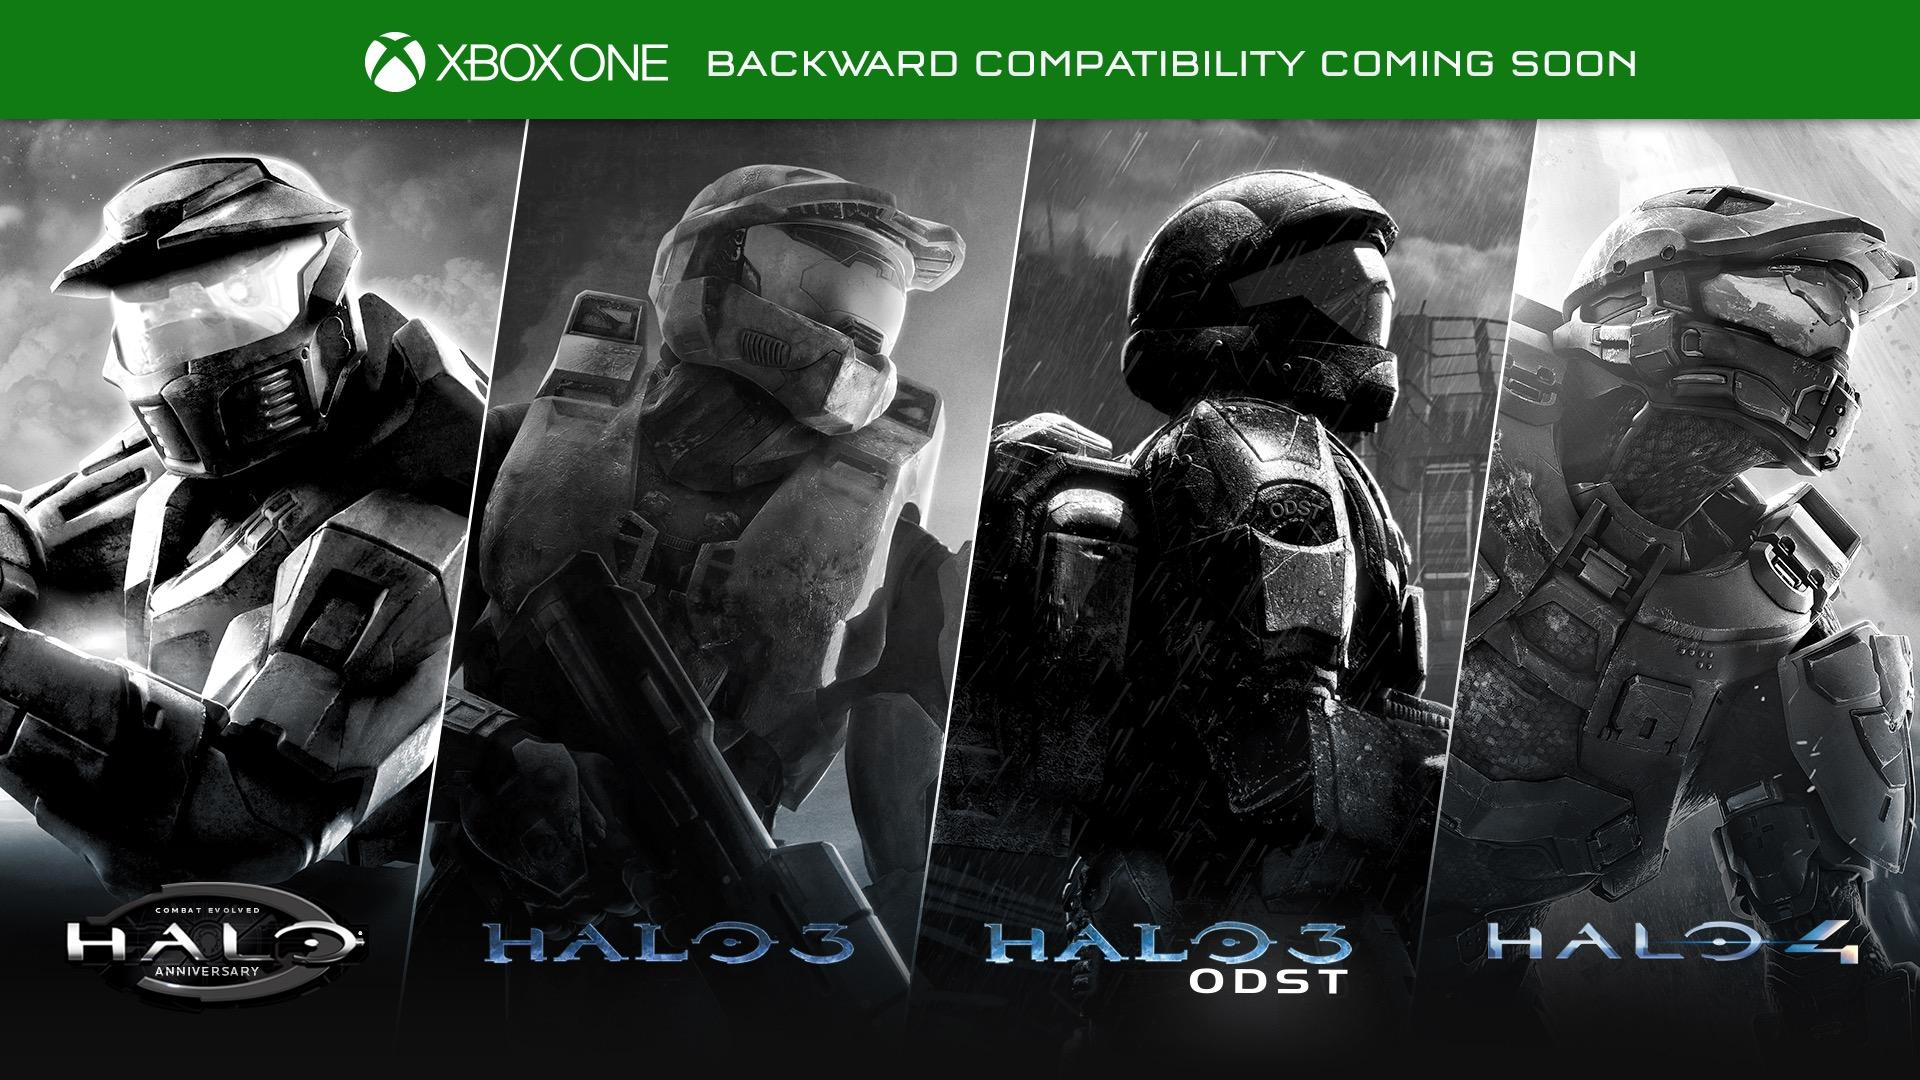 Halo: CE Anniversary, Halo 3, Halo 3: ODST and Halo 4 All Set To Go